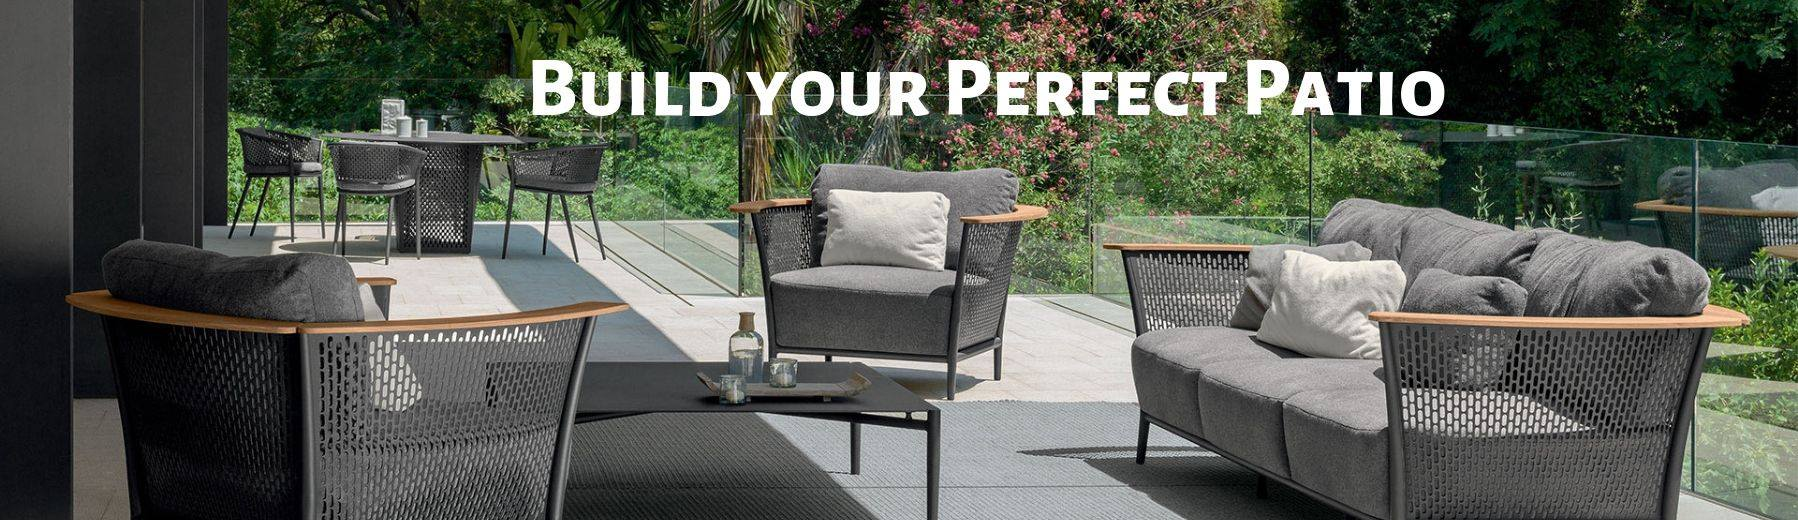 Build your Perfect Patio